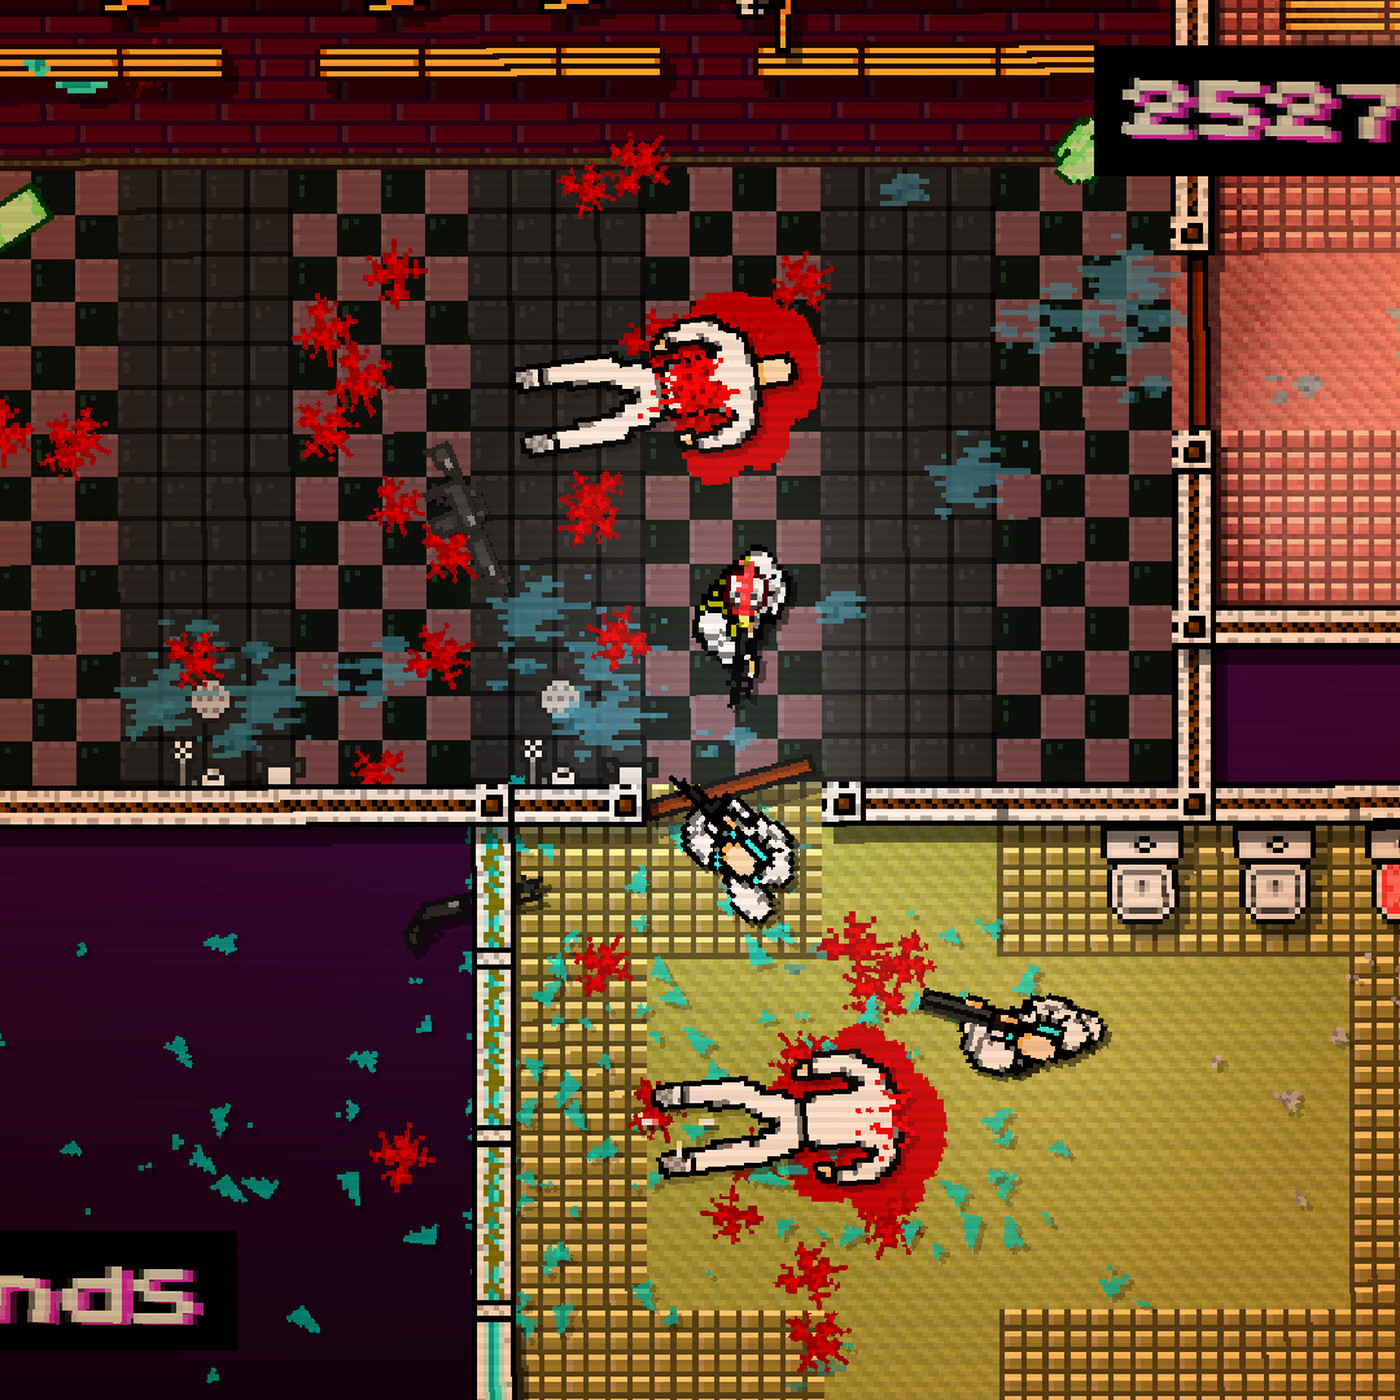 Hotline Miami soundtrack available on Steam, Hotline Miami